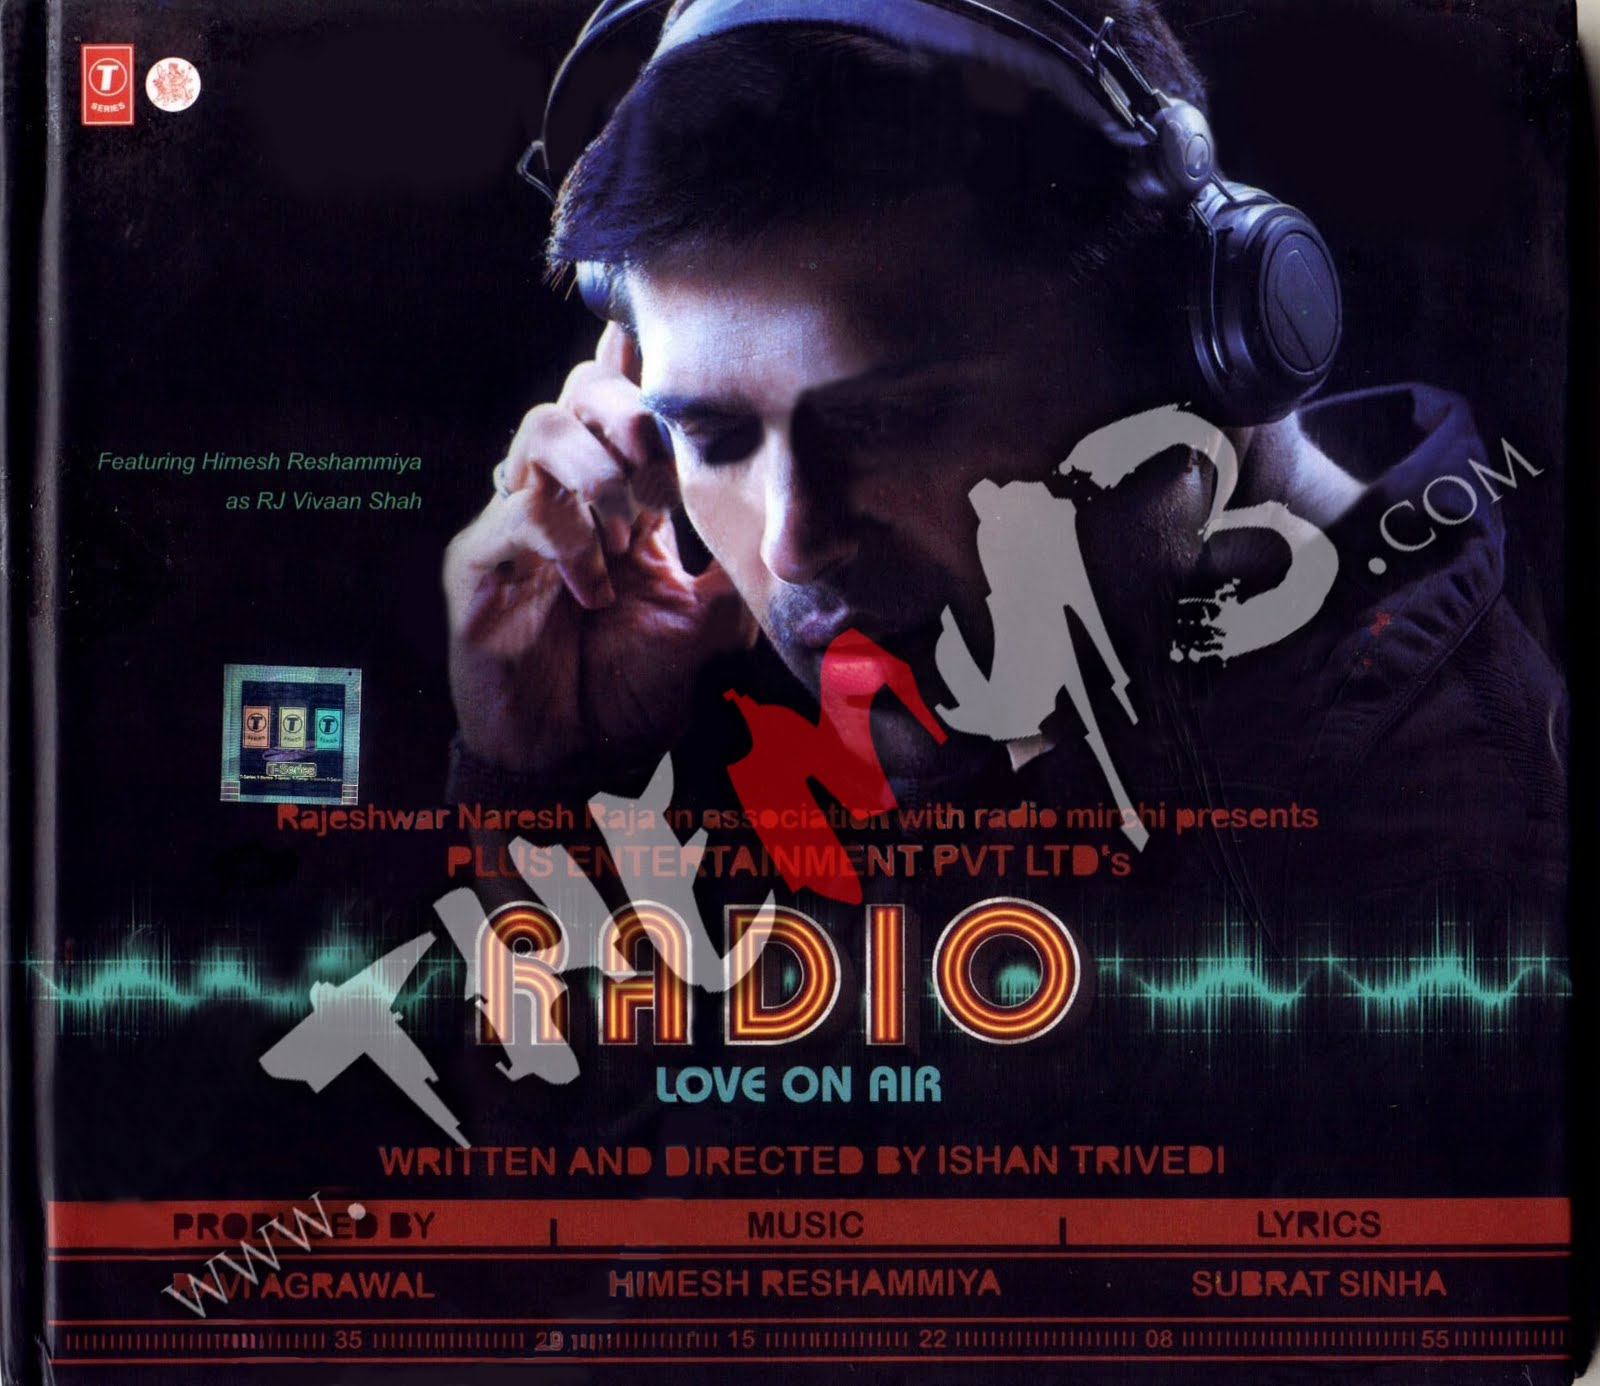 Just Like You Song Download Mp3 By Melone: Radio (2009) Hindi Mp3 Audio Songs